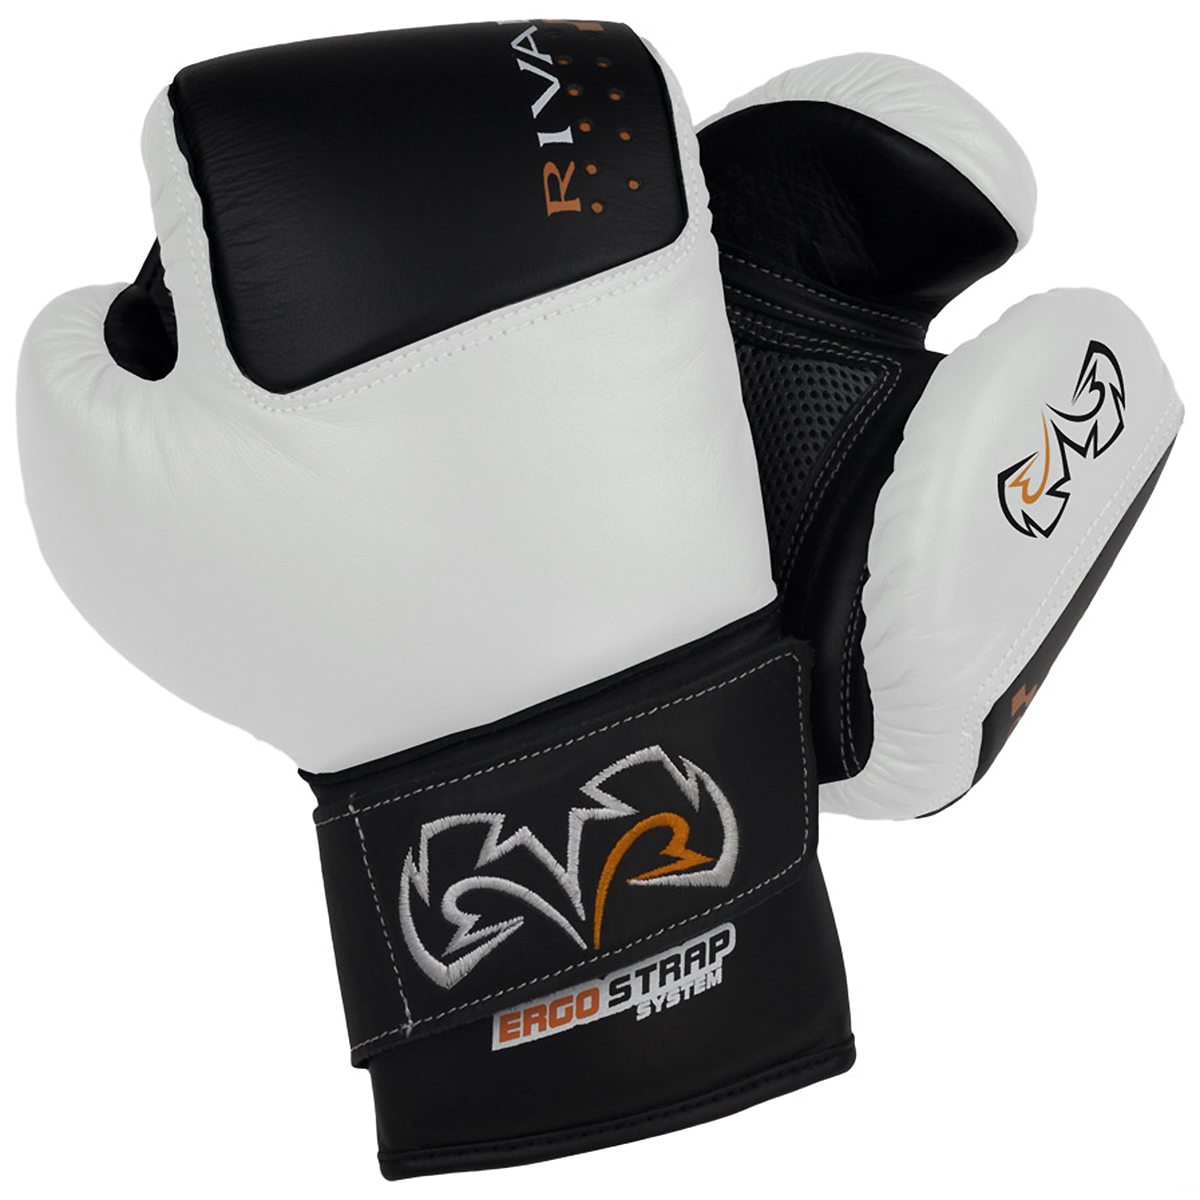 Rival Boxing Bag Gloves RB50 Black Intelli-Shock Compact